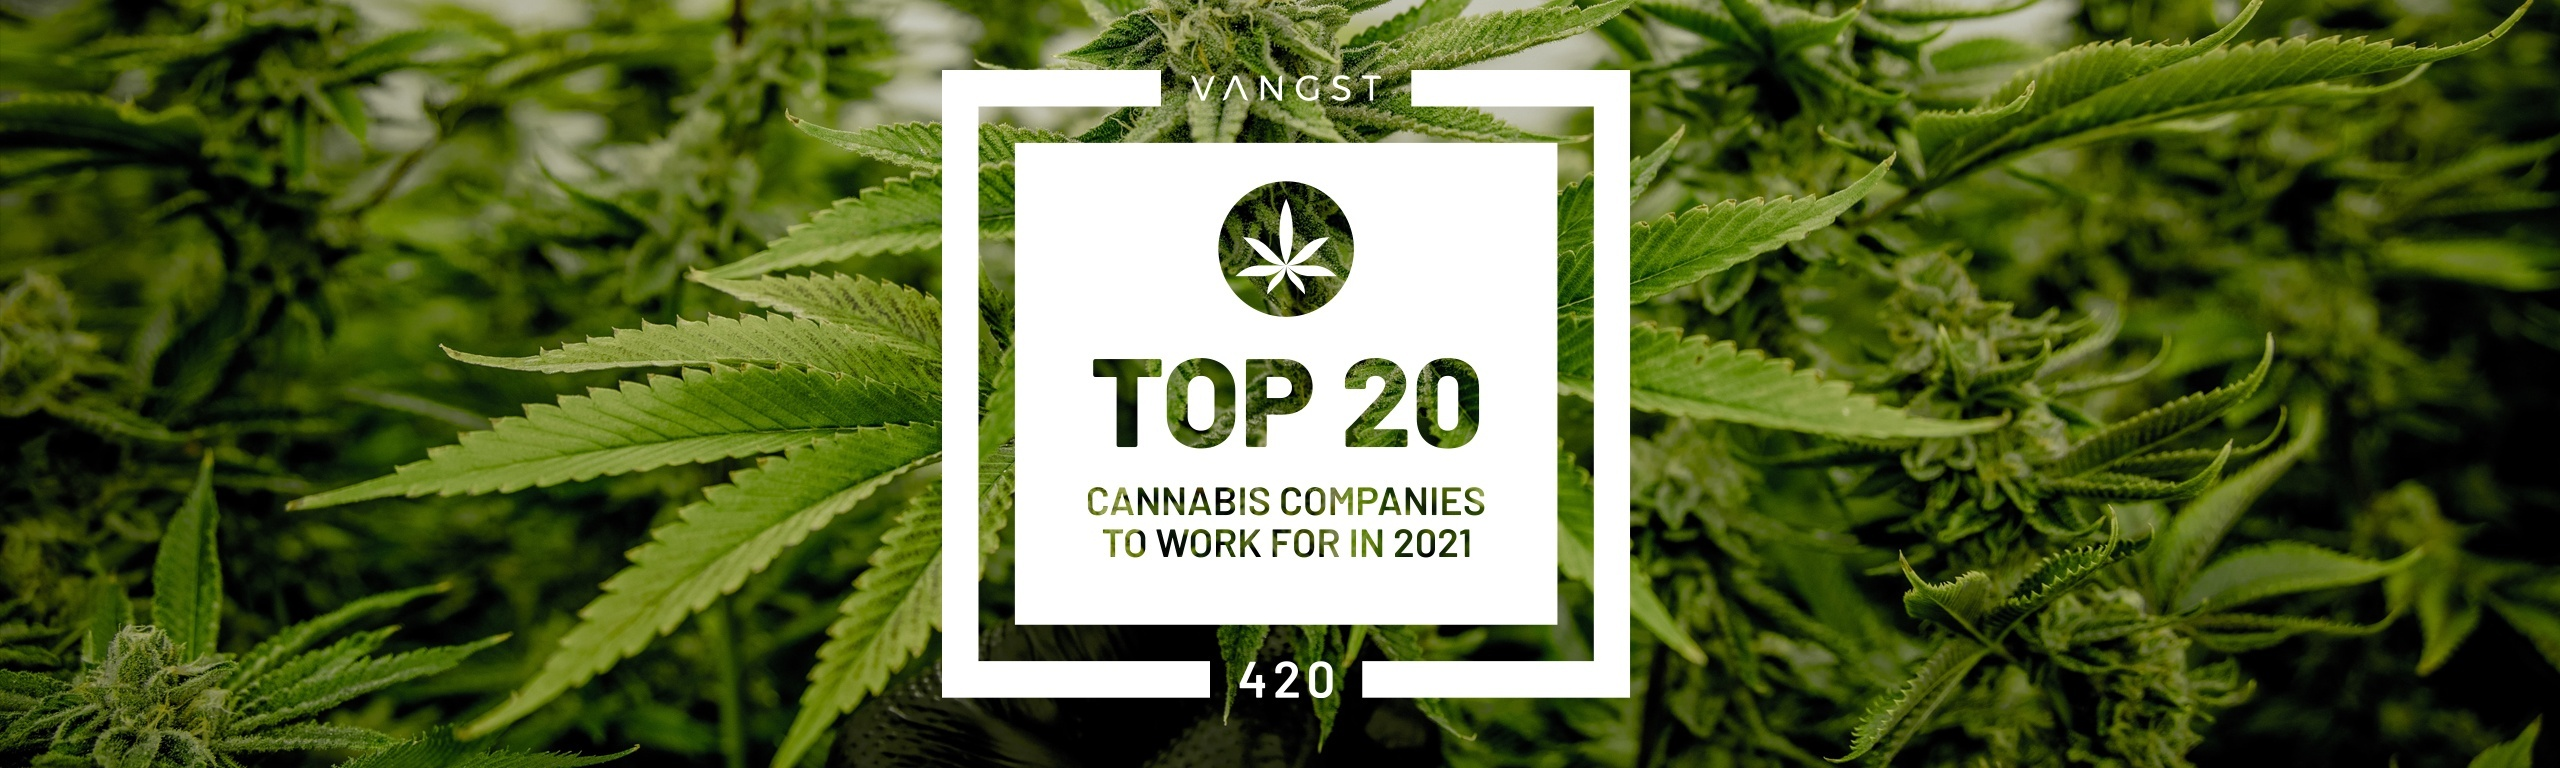 2021 Top Cannabis Companies to Work For